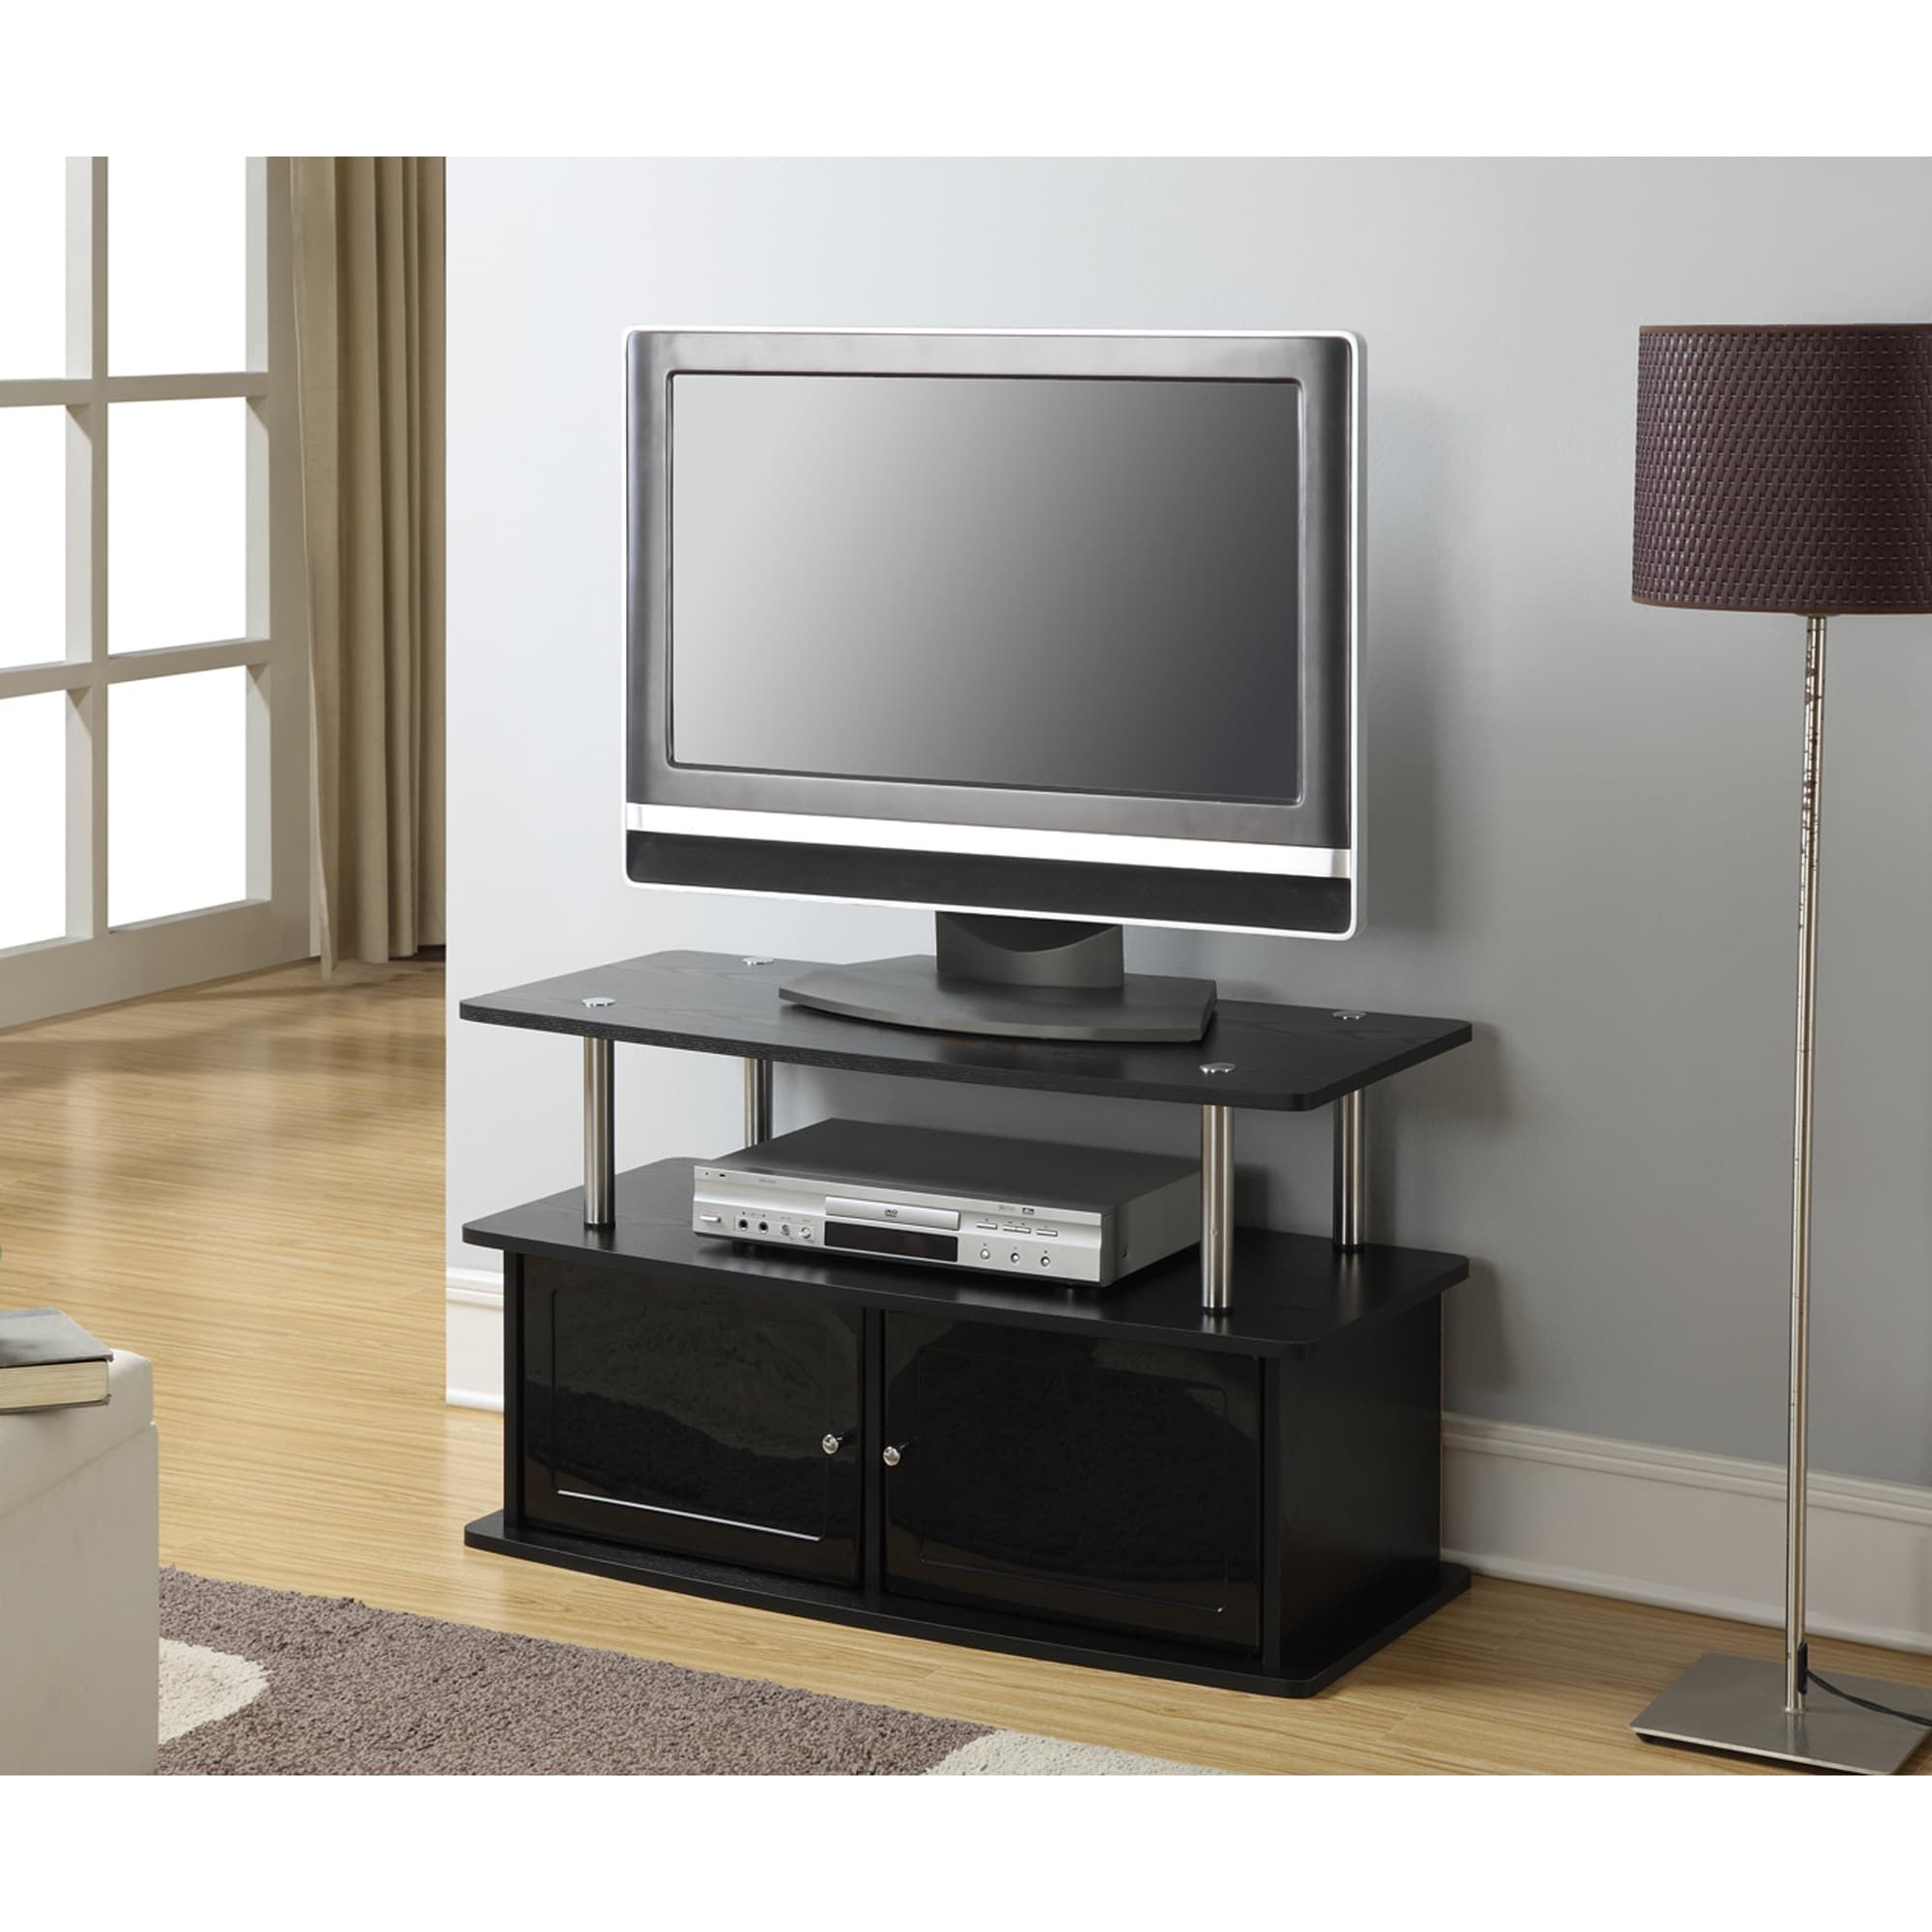 Porch & Den Bywater Montegut Stainless Steel and Wood TV Stand with